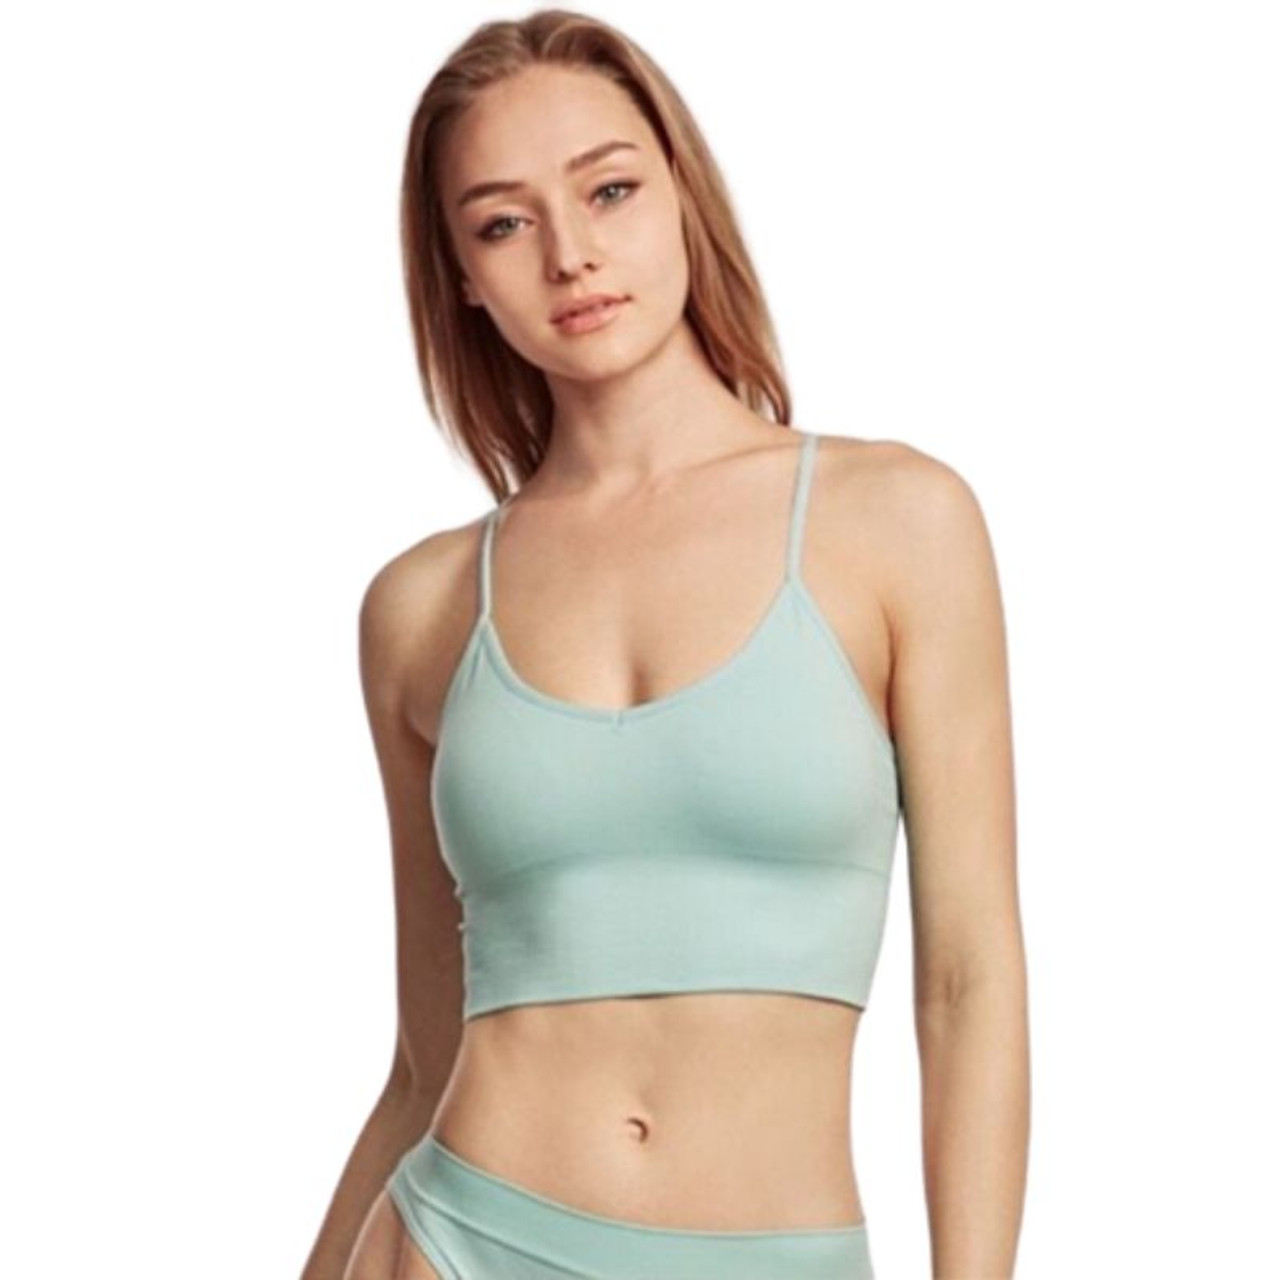 Mystery Deal: Breathable Seamless Spaghetti Strap Sports Bra - 3 Pack